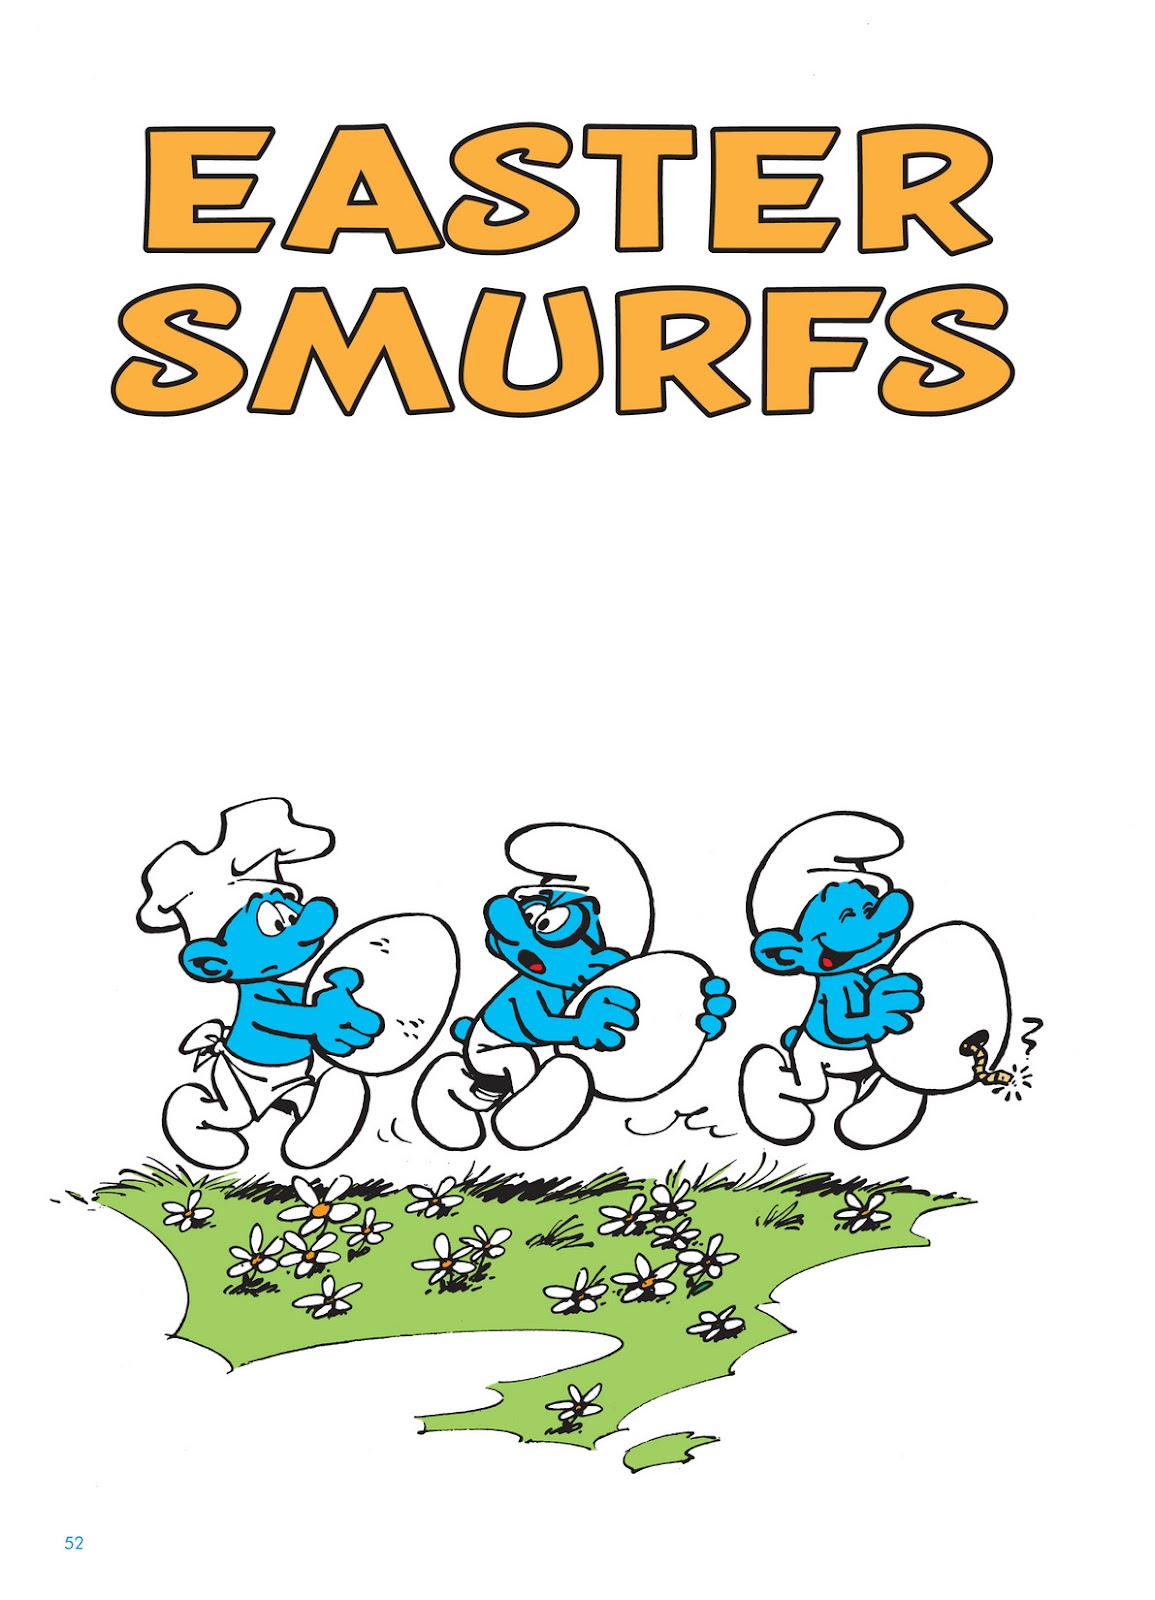 Read online The Smurfs comic -  Issue #12 - 52